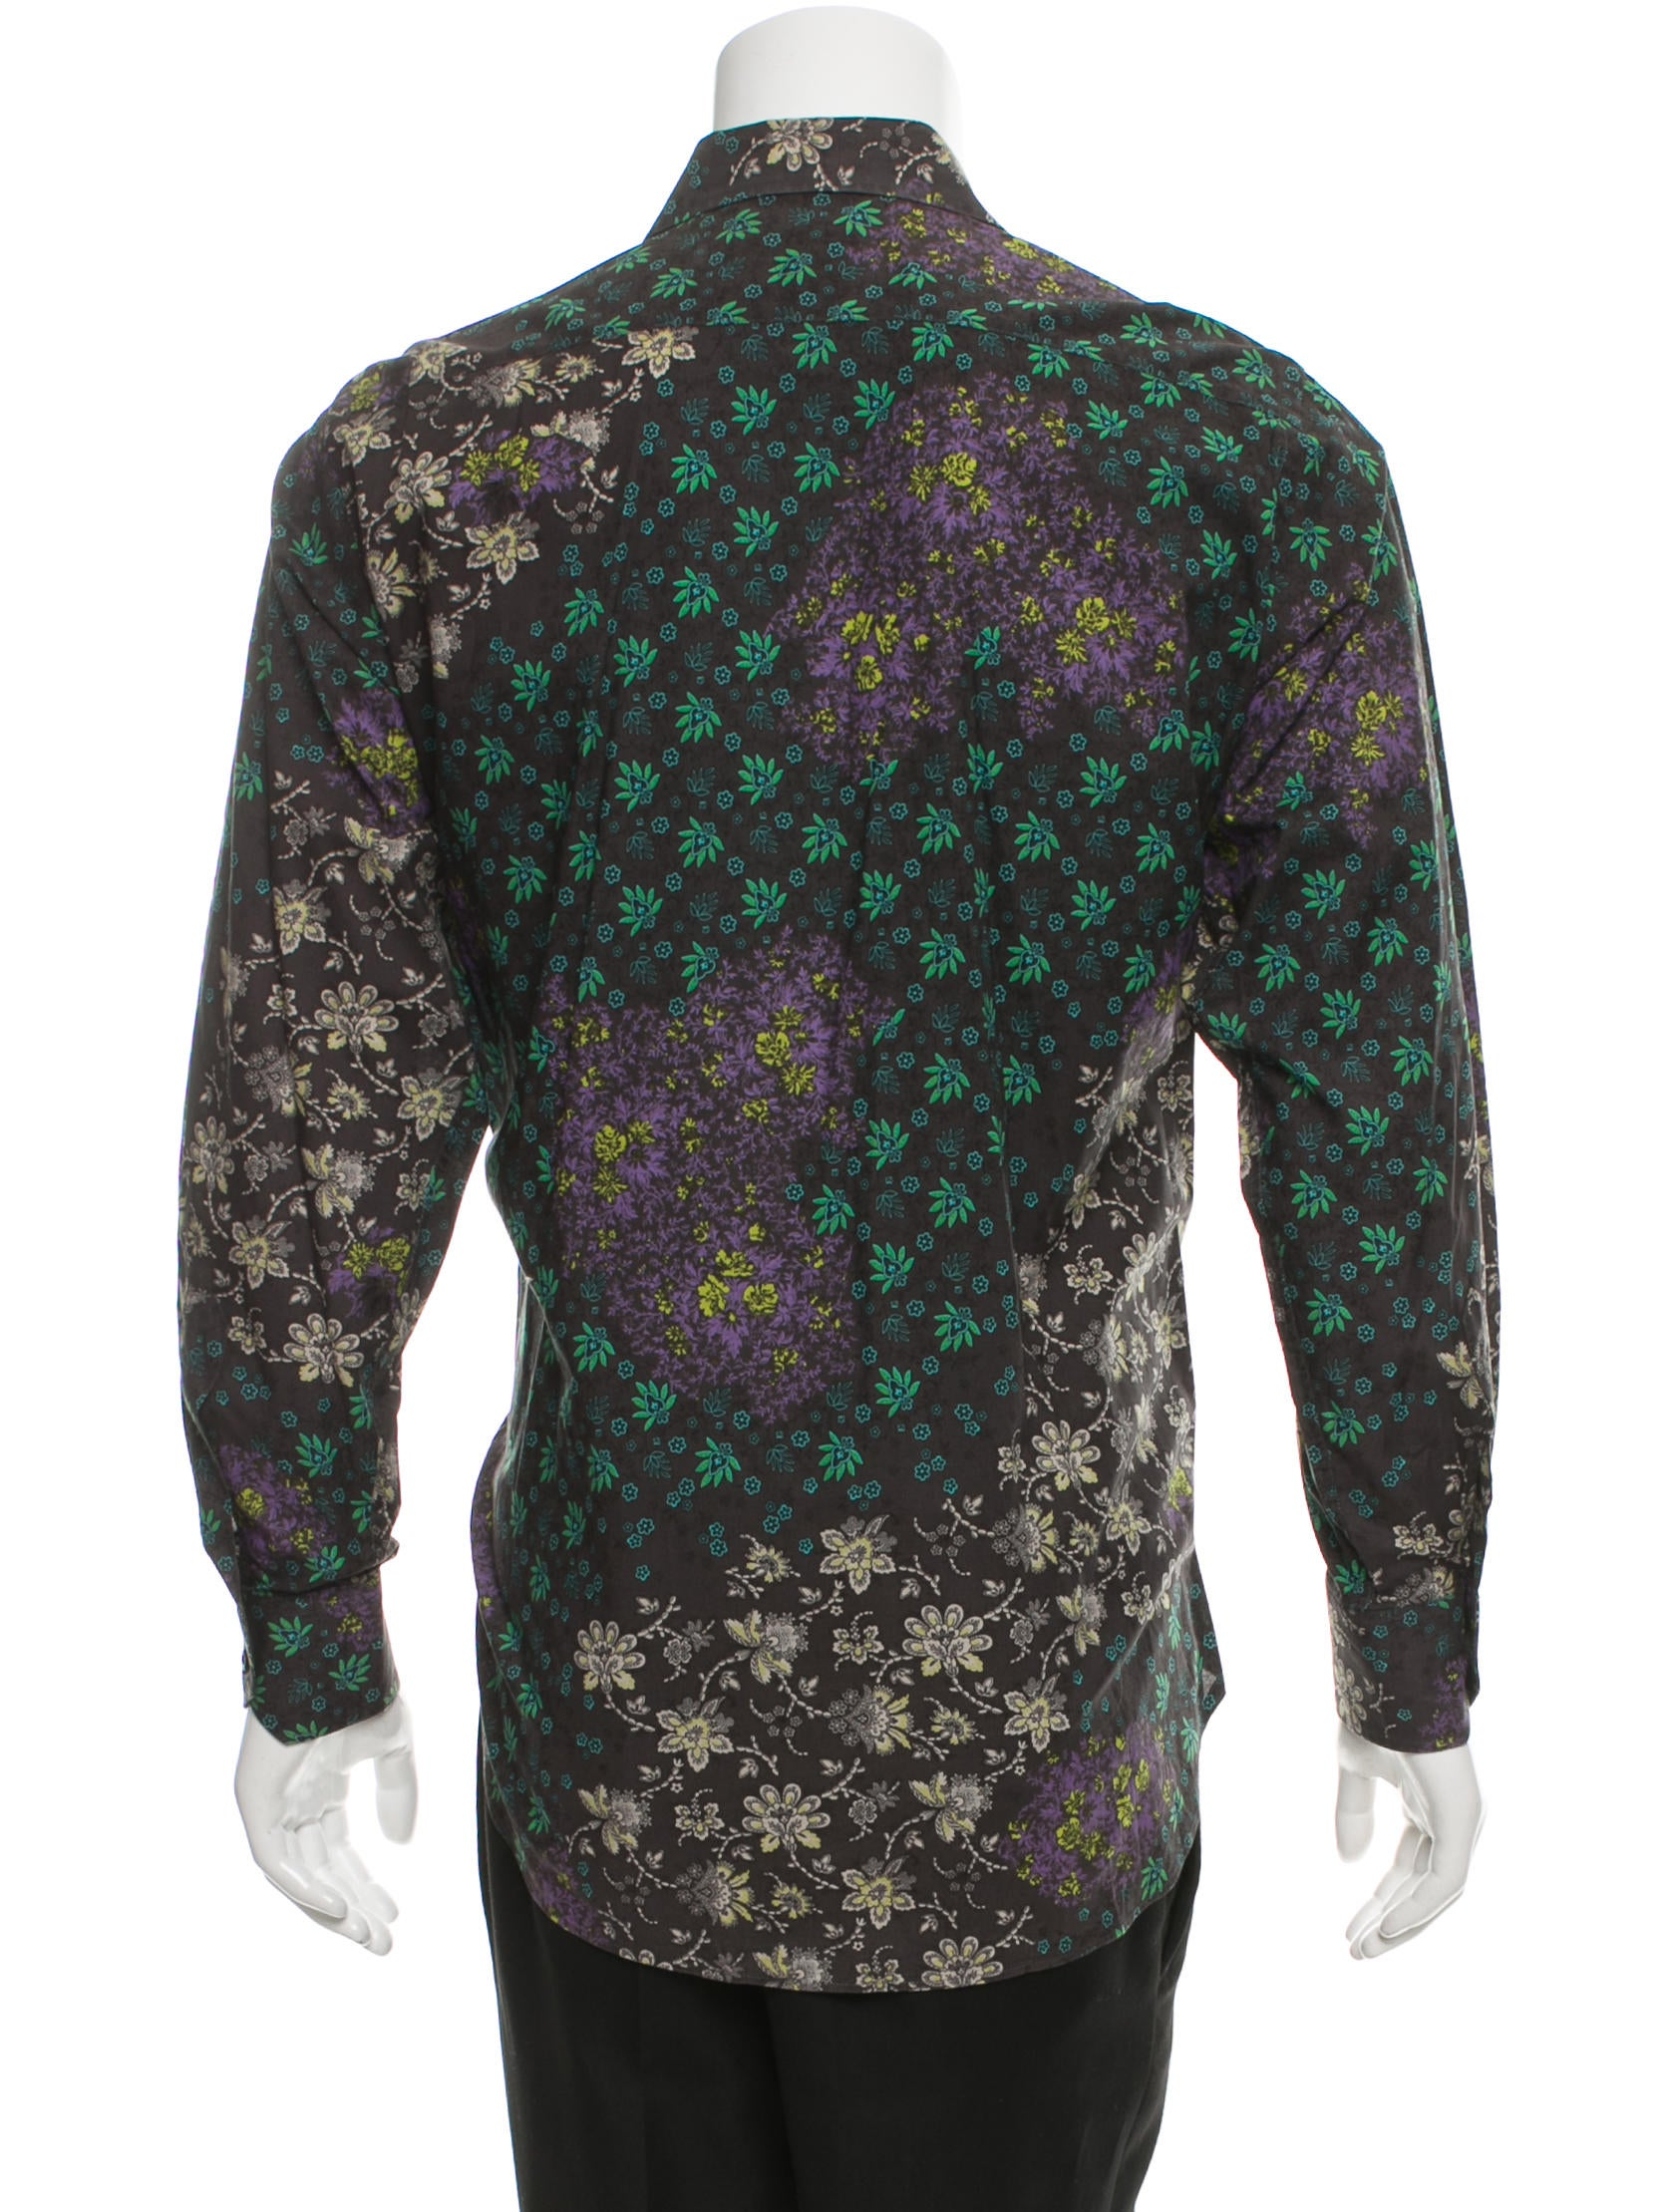 Etro floral print button up shirt clothing etr50291 for Floral print button up shirt